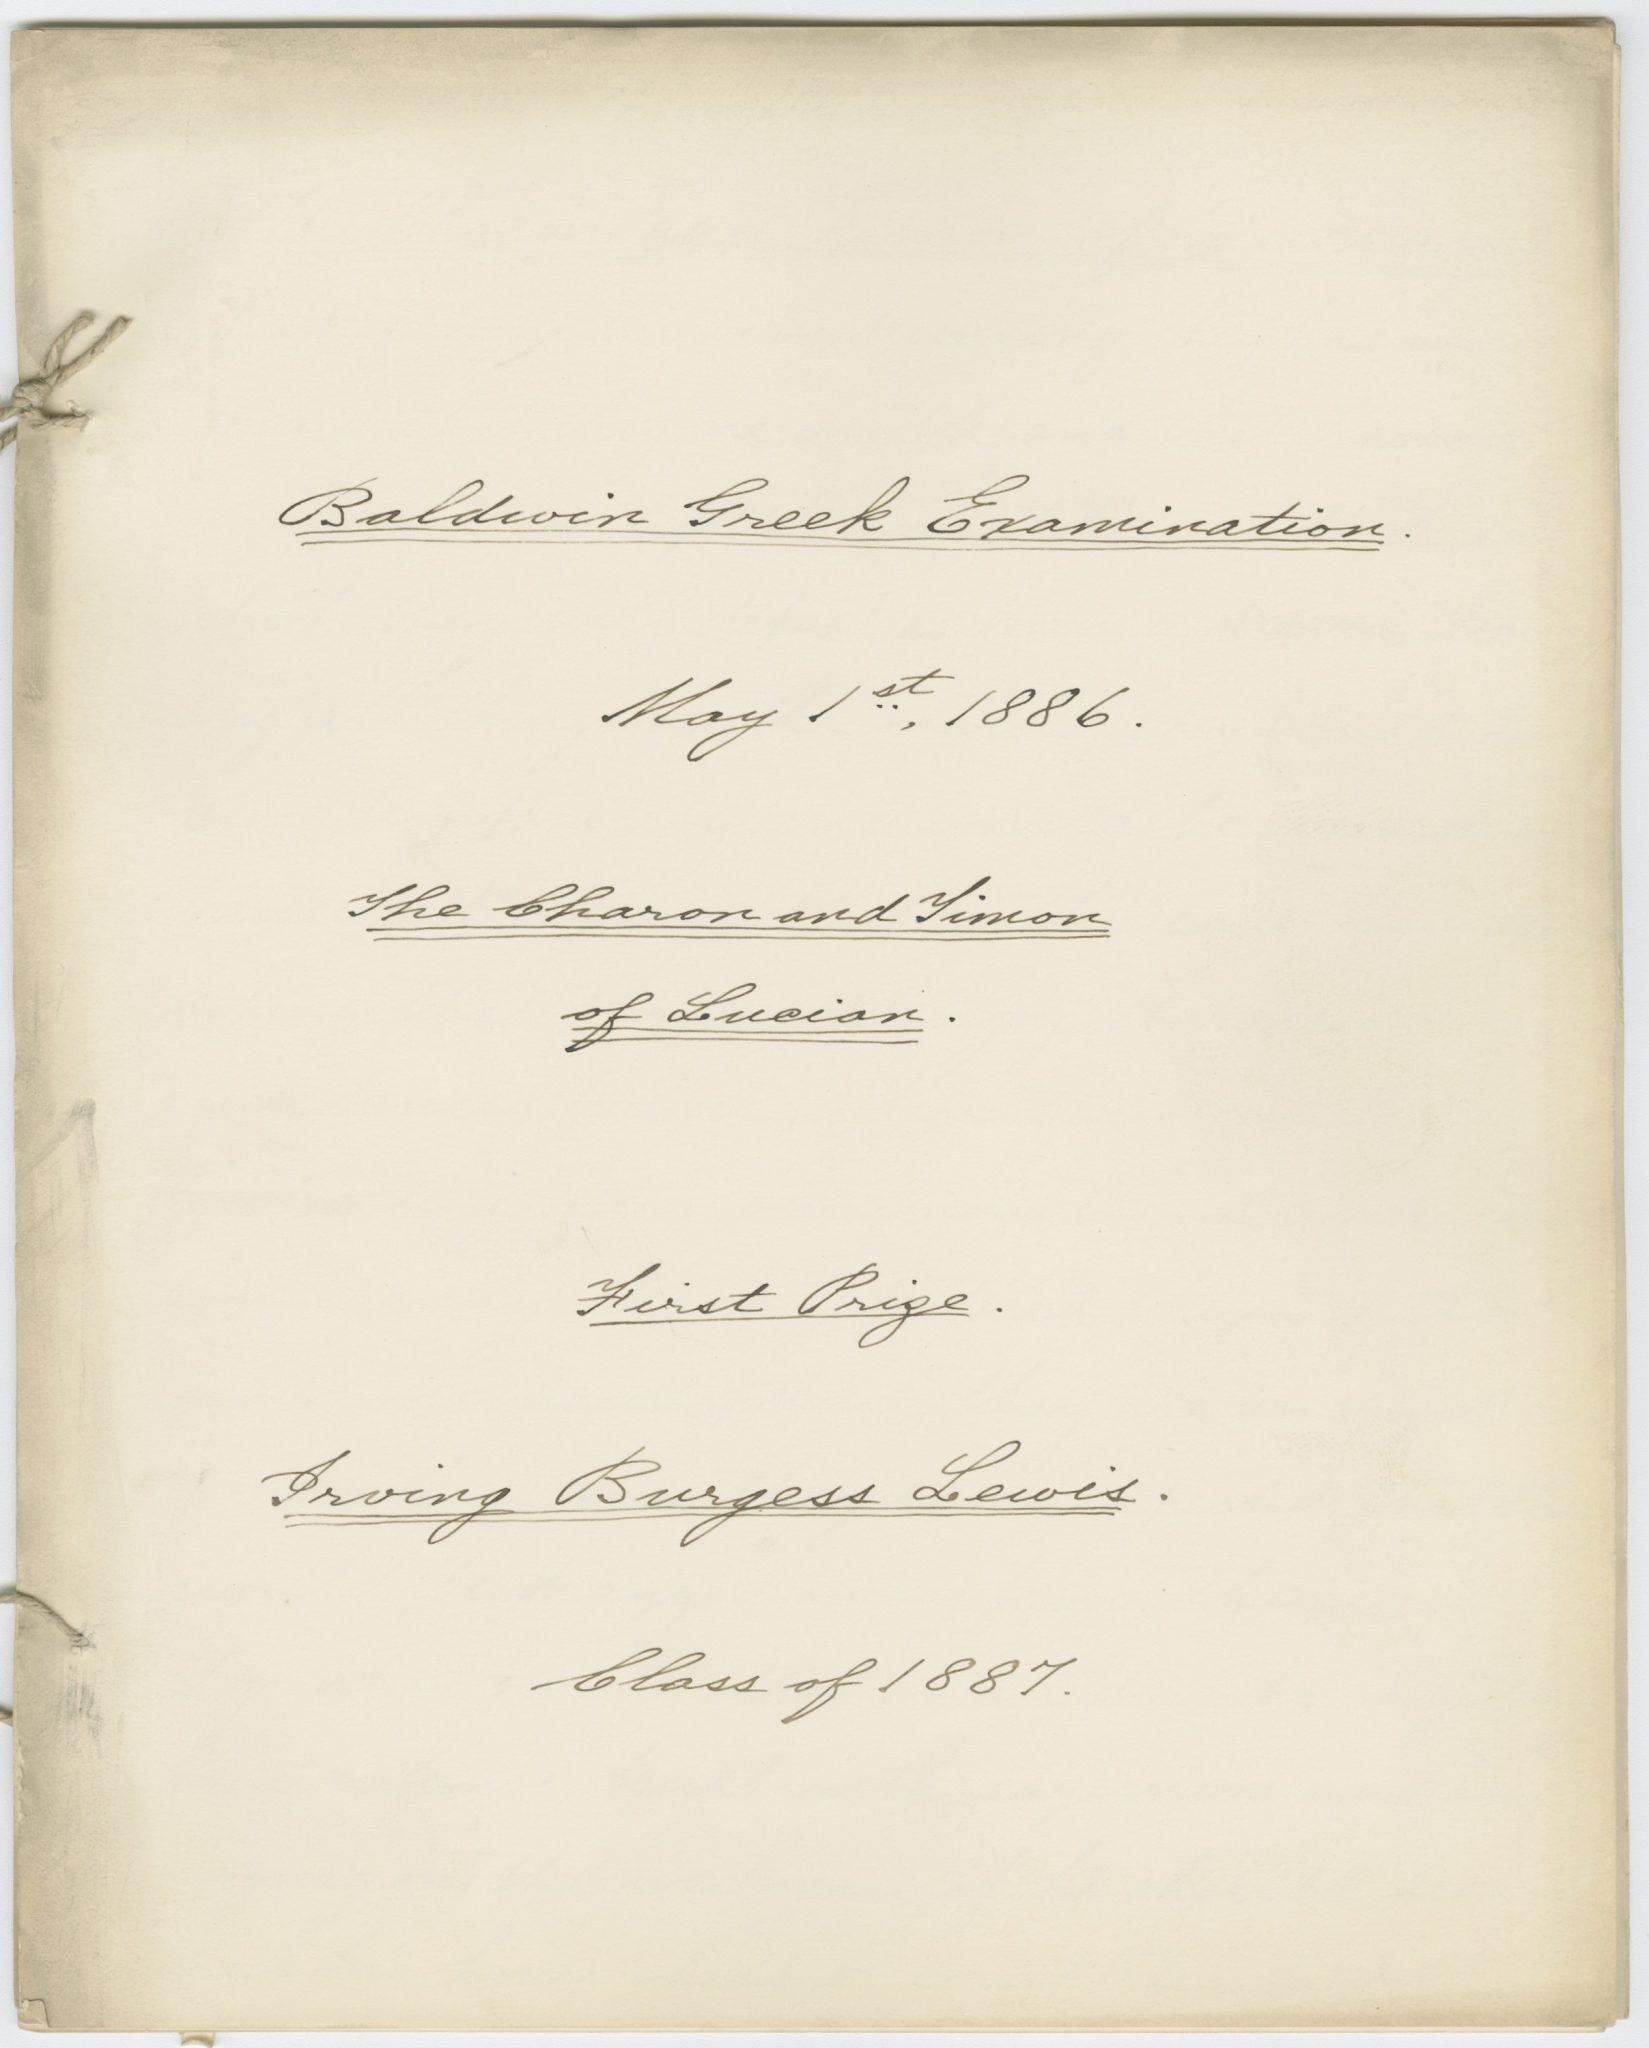 <p>Baldwin Greek Prize Examination of Irving Burgess Lewis</p><p>class of 1887, May 1, 1886.</p><p>Student Oratorical and Essay Contests collection.</p><p>Special Collections and University Archives,</p><p>Colgate University Libraries.</p>